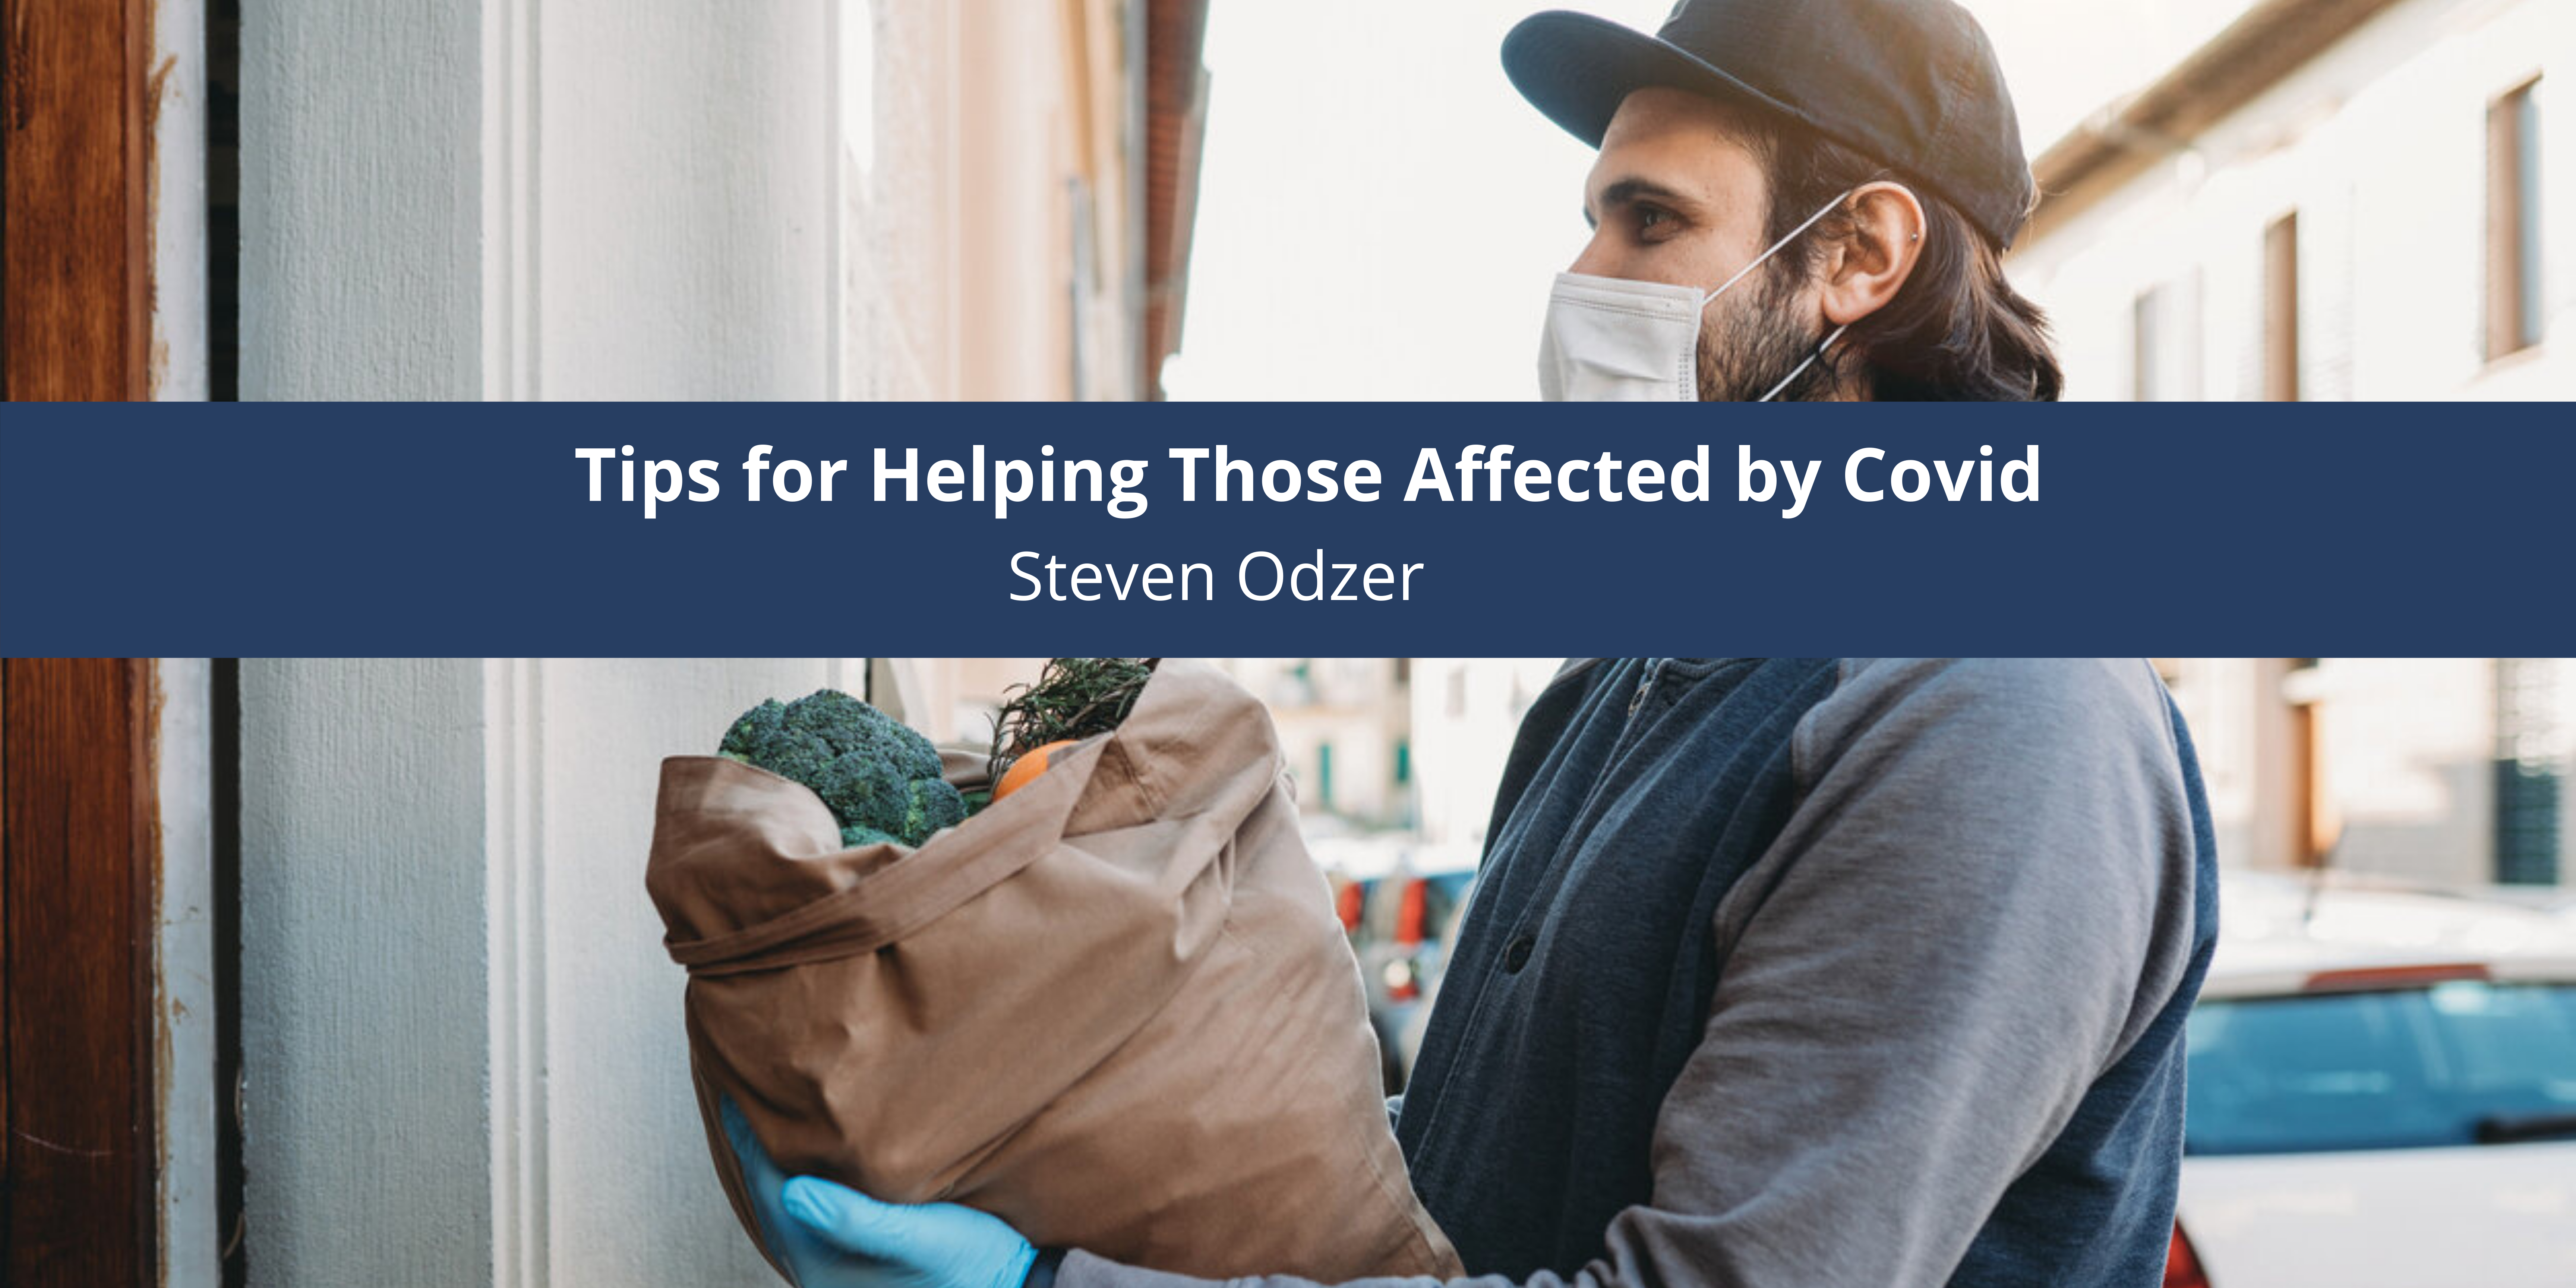 Steven Odzer Gives Tips for Helping Those Affected by Covid